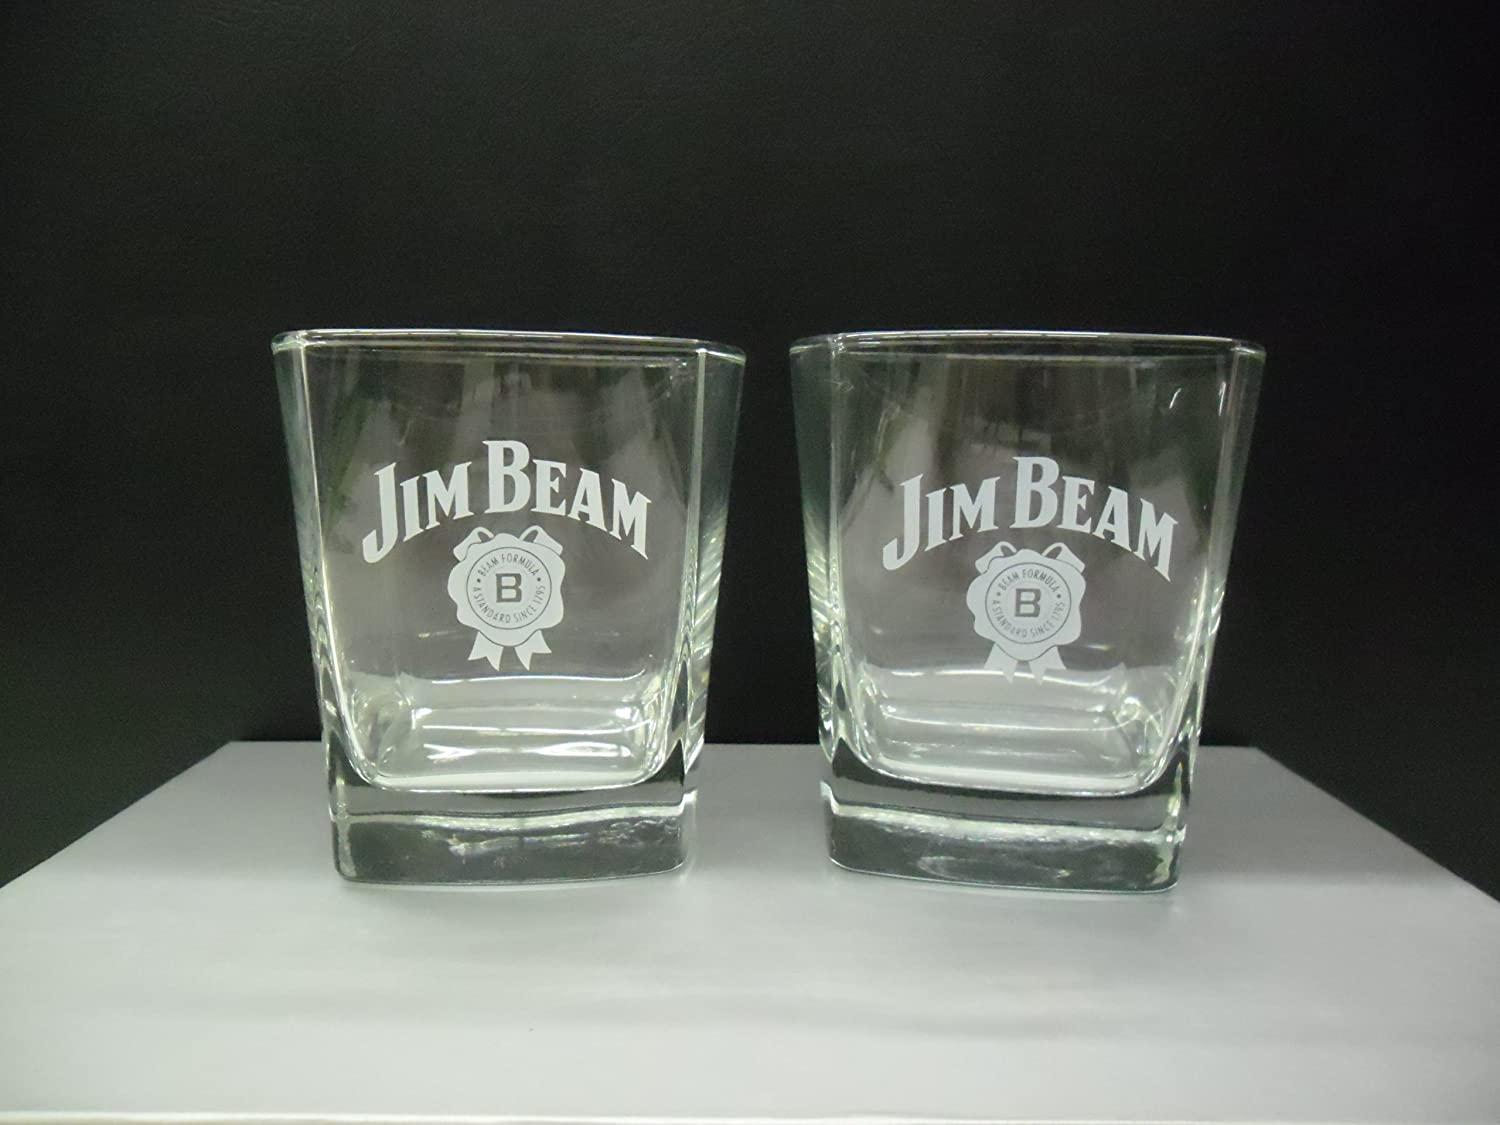 Jim beam glass